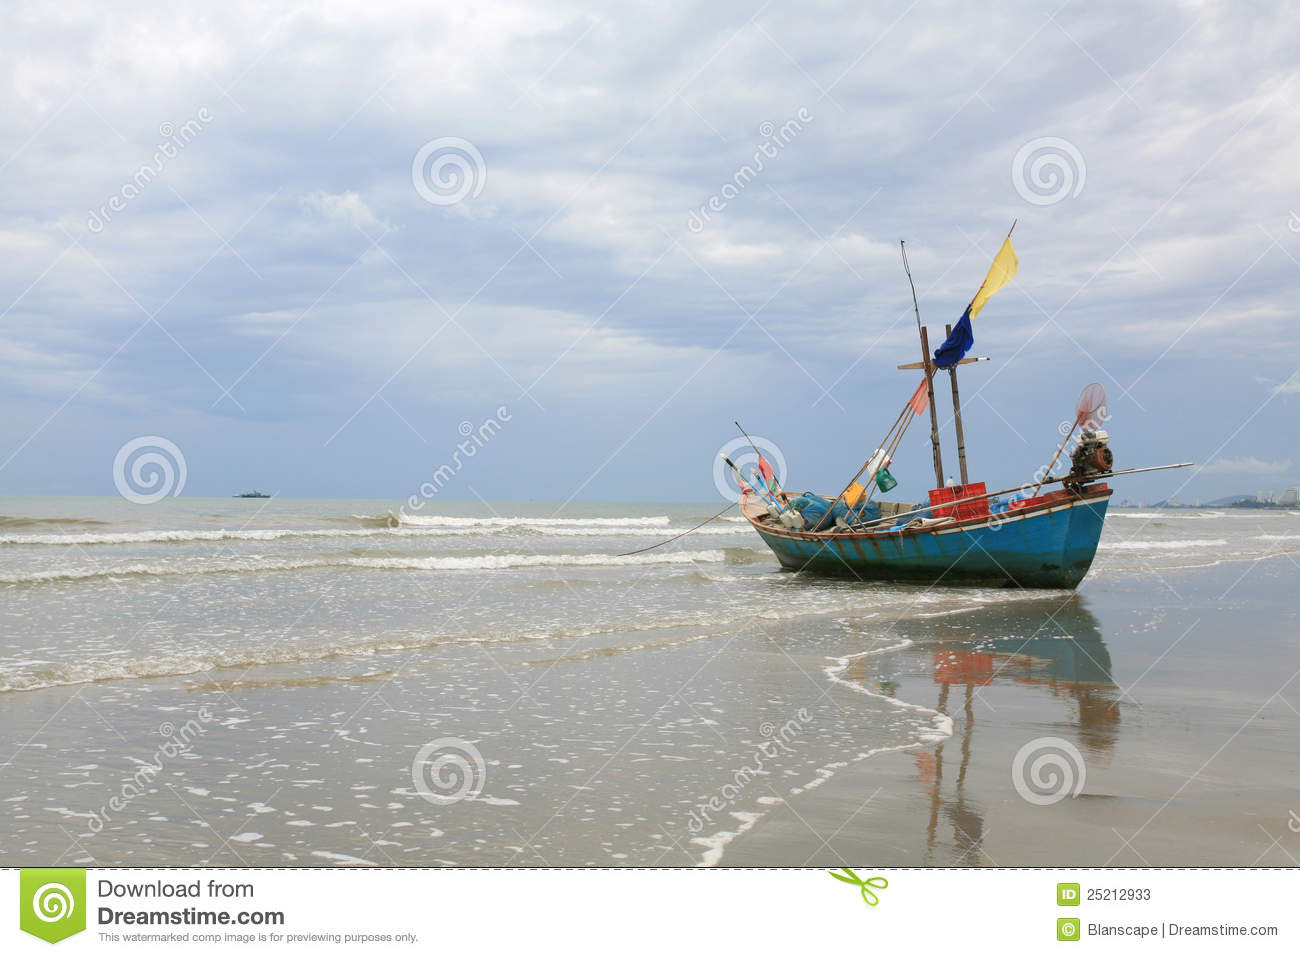 Small Wooden Fishing Boat Parking On The Beach Stock Photos - Image: 25212933